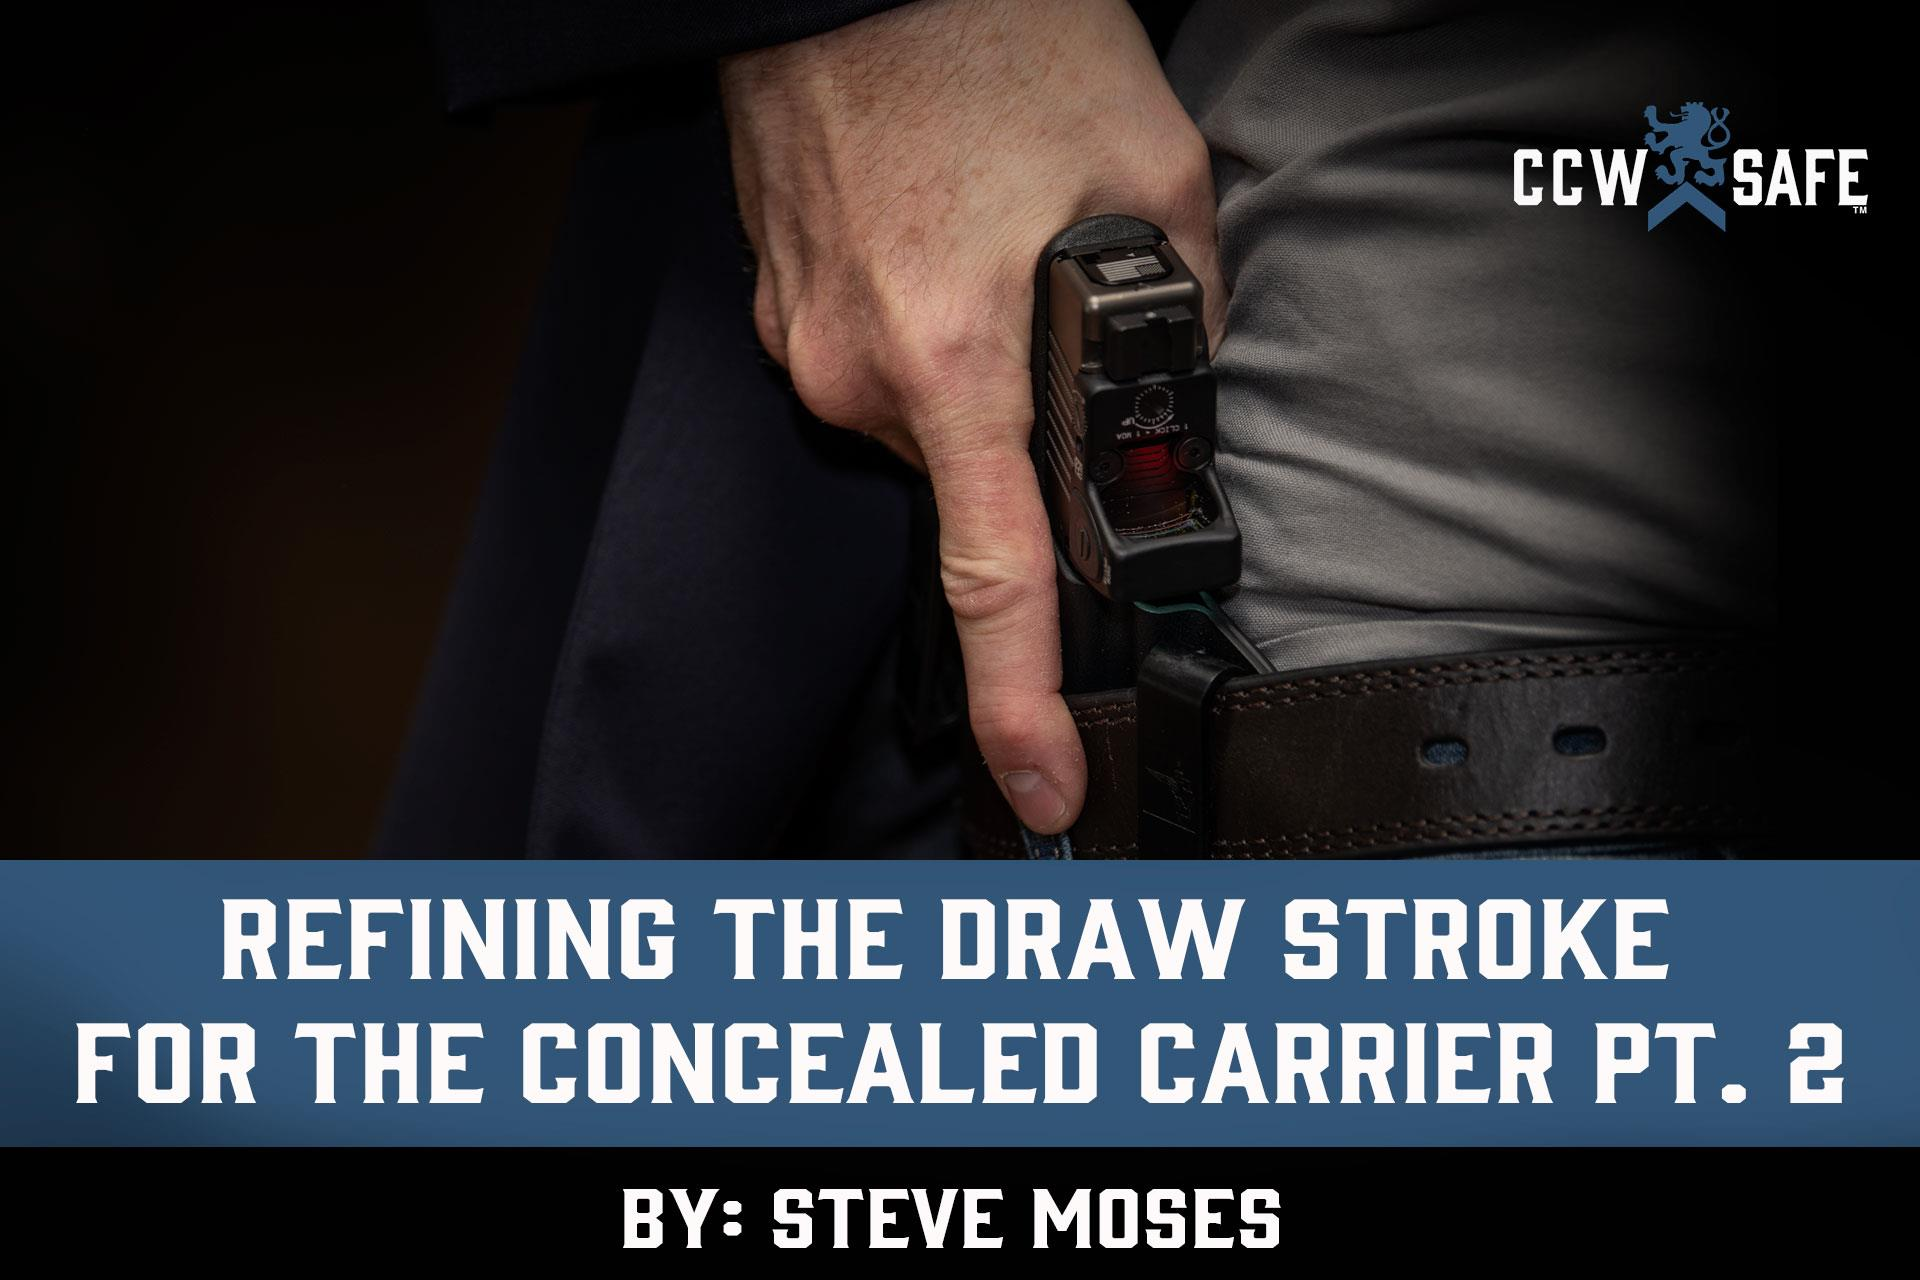 REFINING THE DRAW STROKE FOR THE CONCEALED CARRIER PT.2